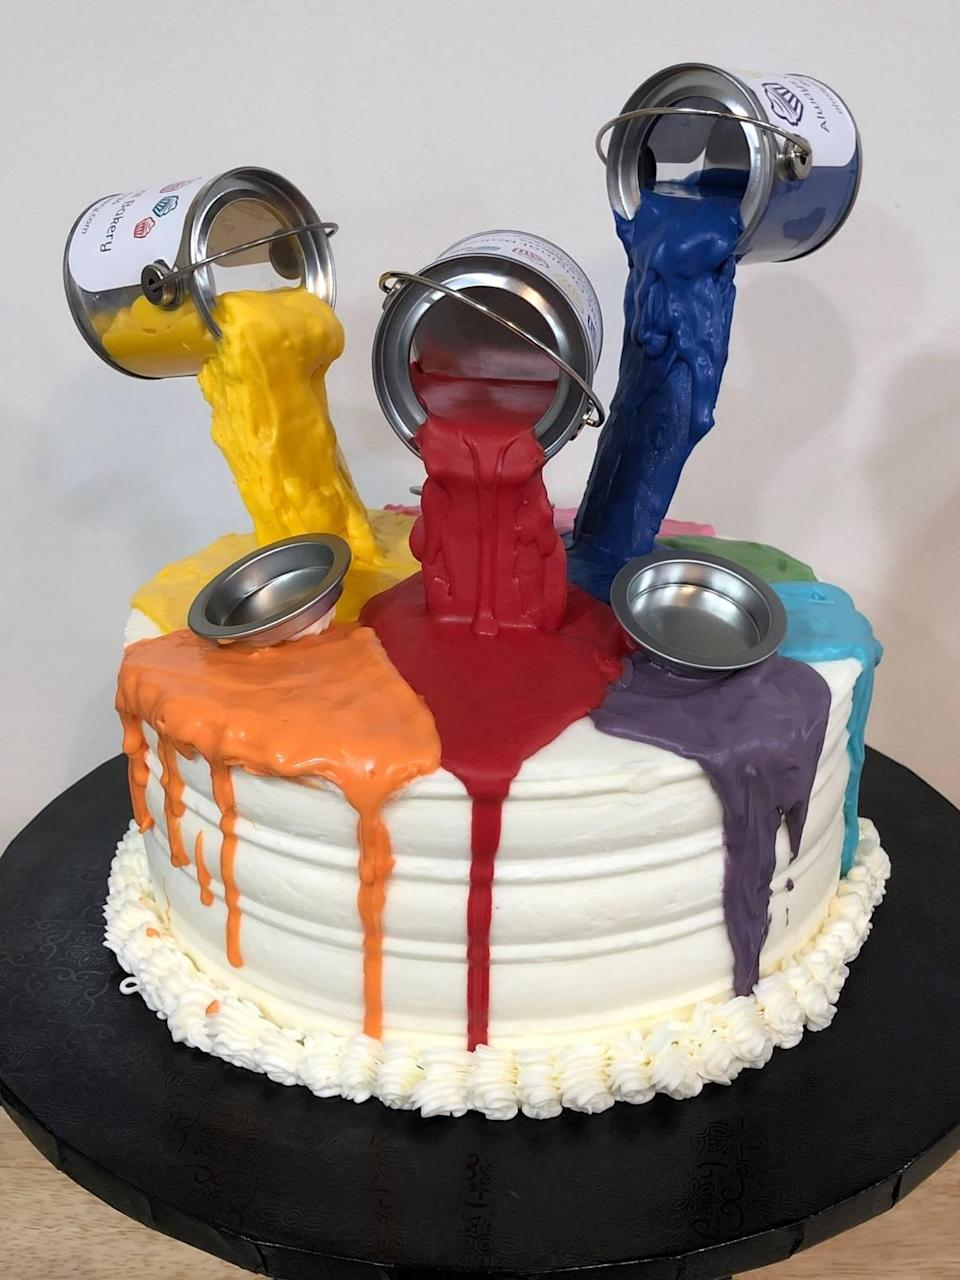 Jay Dawson, baker and co-owner of Always Original Bakery that will open in West Columbia, baked a cake with floating paint cans for an event.